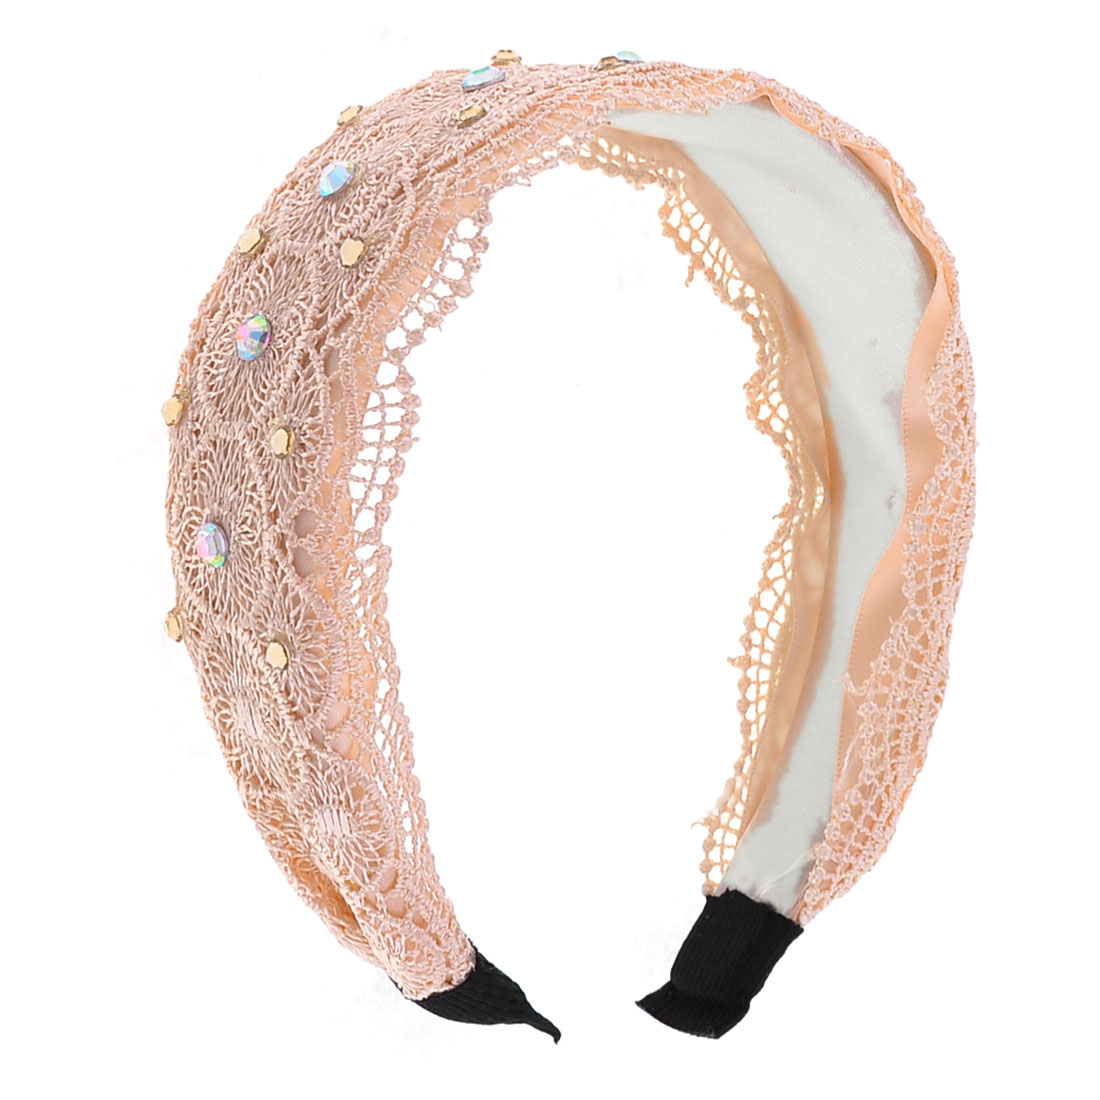 Light Pink Plastic Rhinestones Lace Edge Detail Hair Hoop for Girls